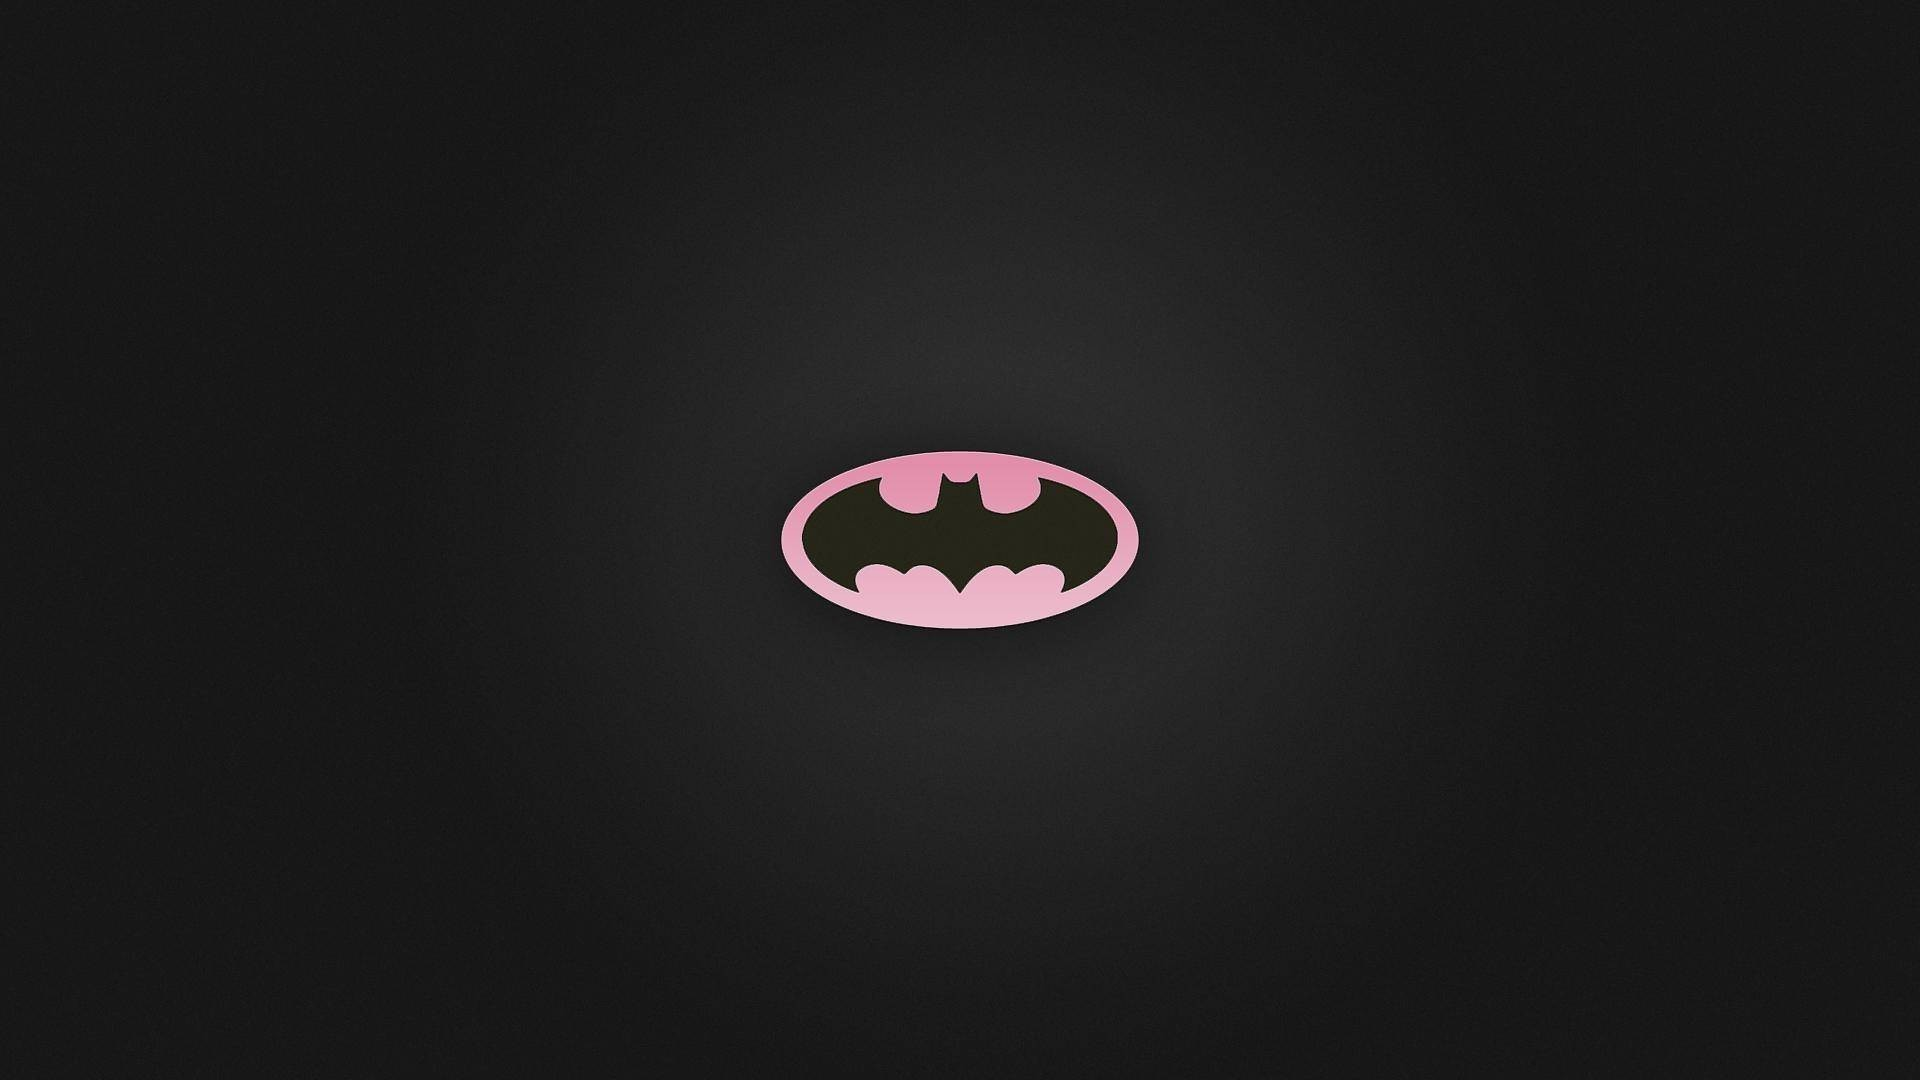 2560x1600 Published 25072012 At 2560 A 1600 In The Dark Knight Rises Batman Logo Abstract Wallpaper